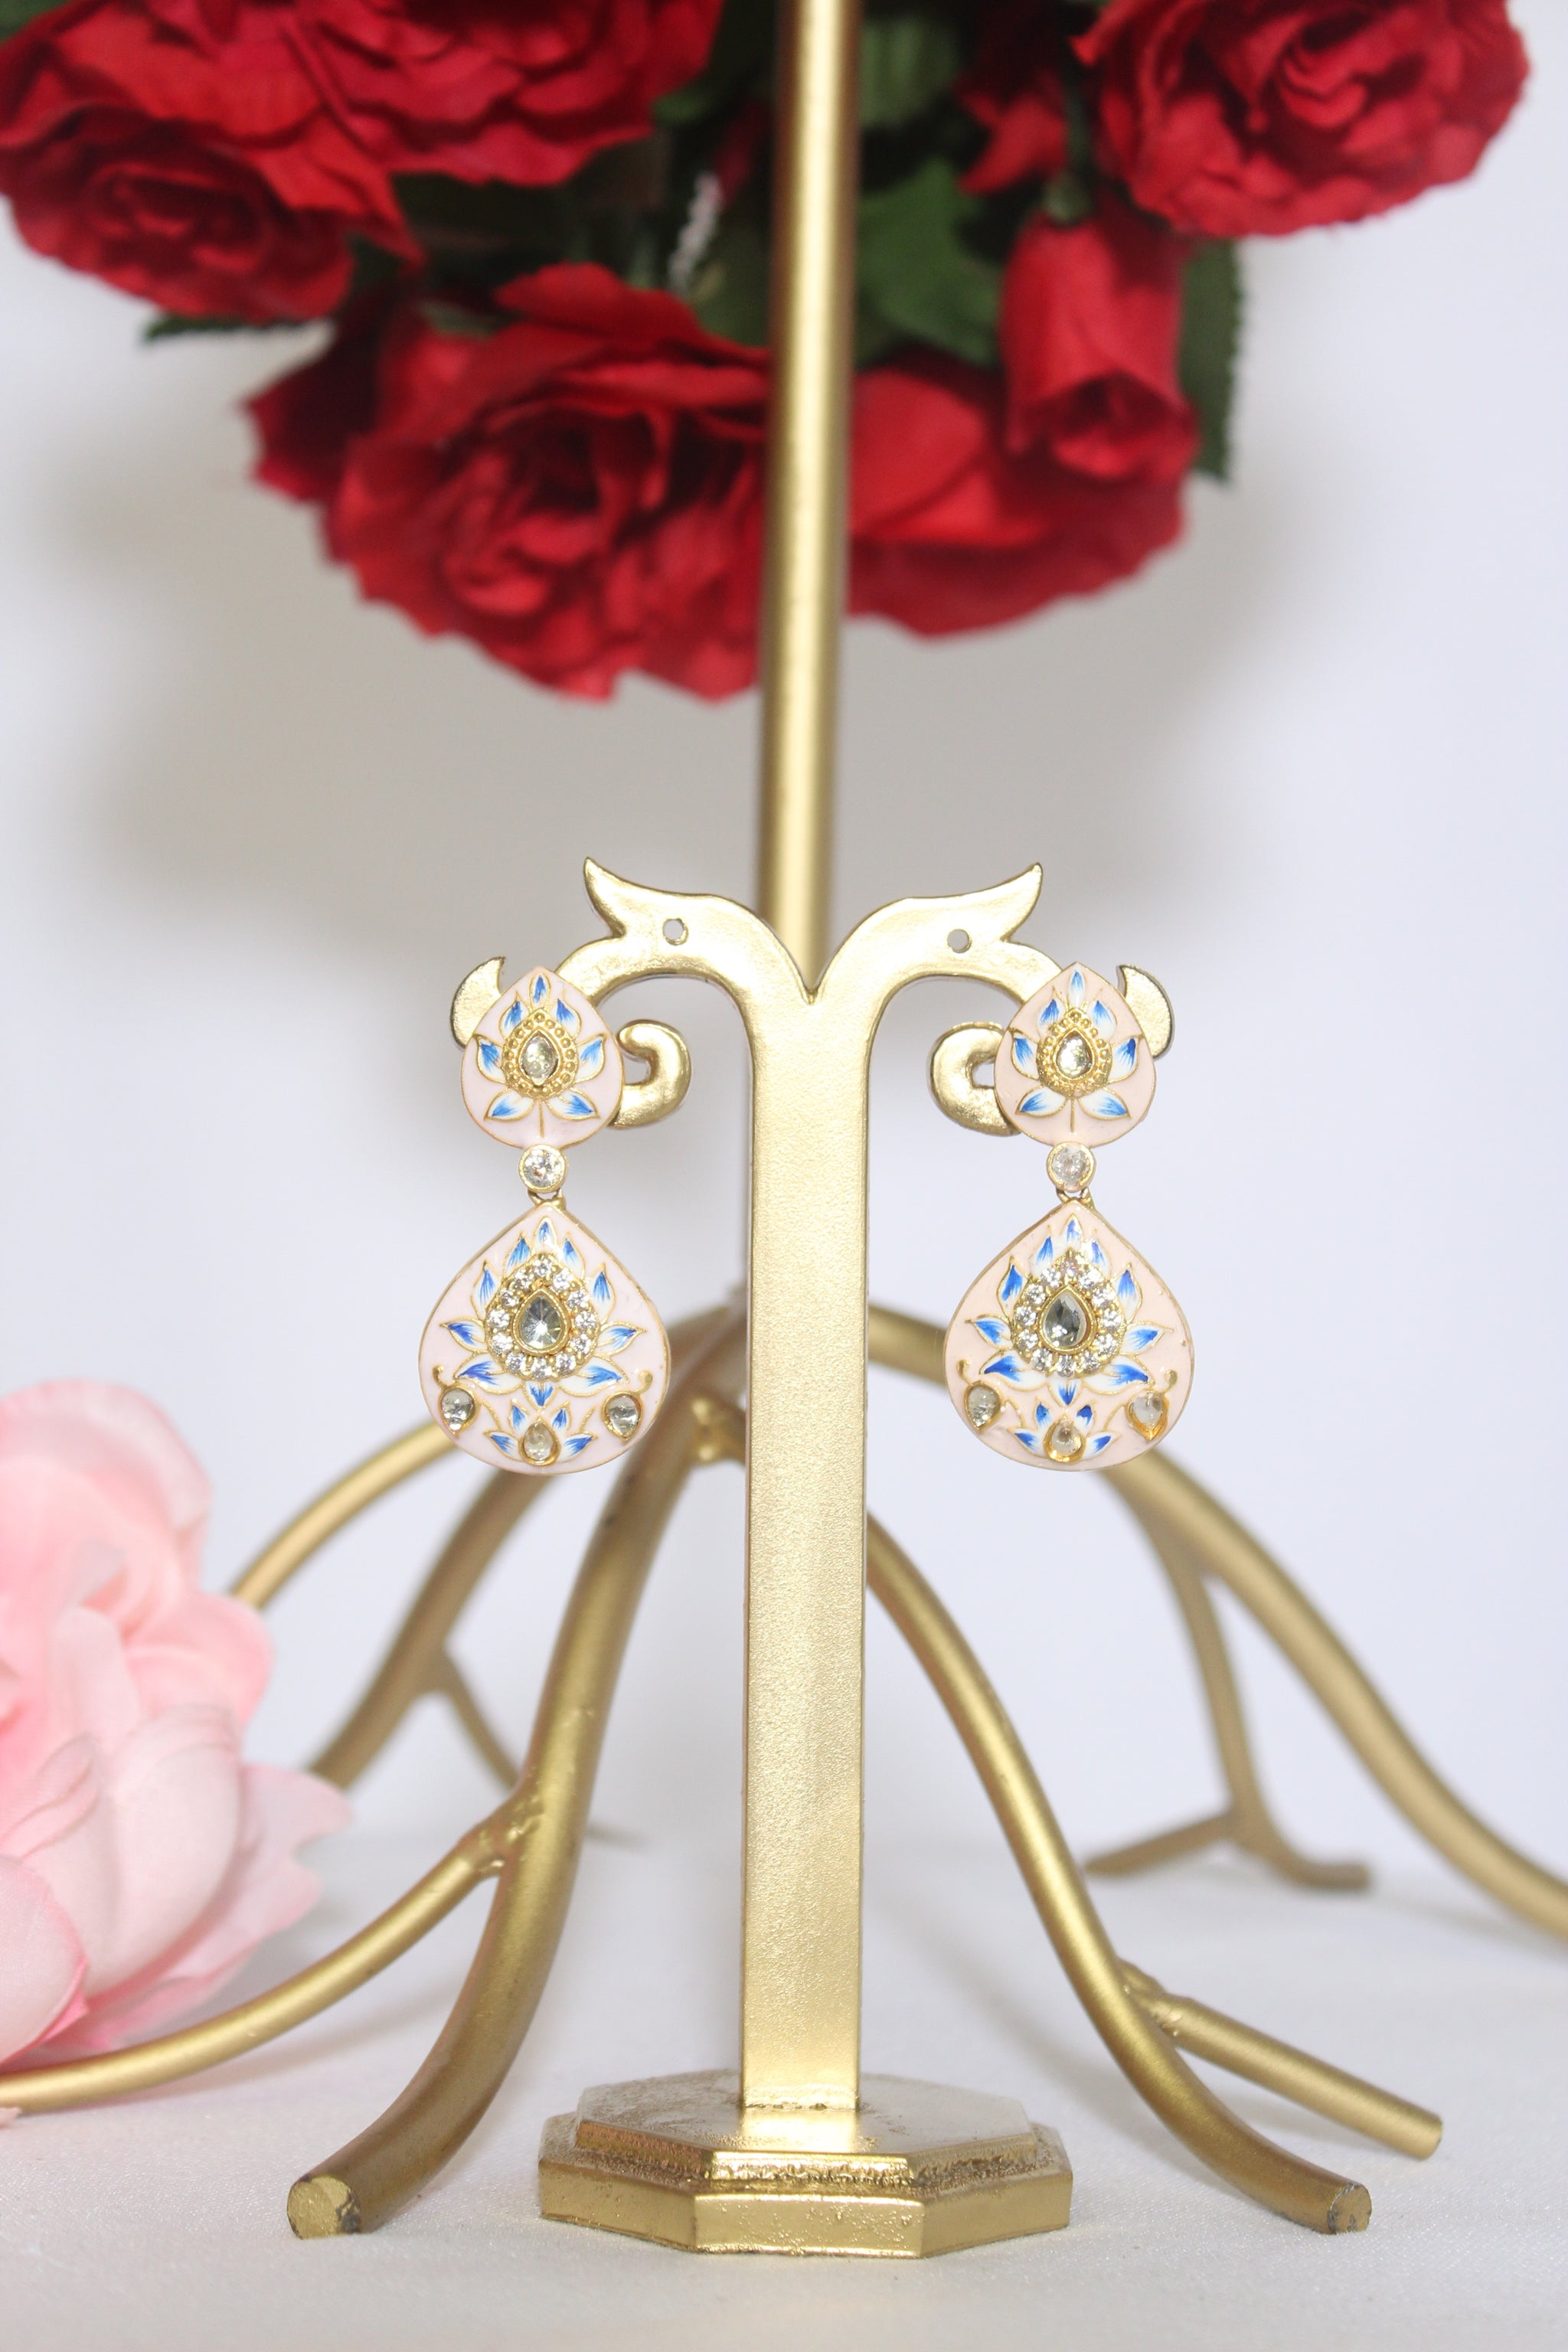 Peach pink meenakari drop dangling earrings studded with kundan